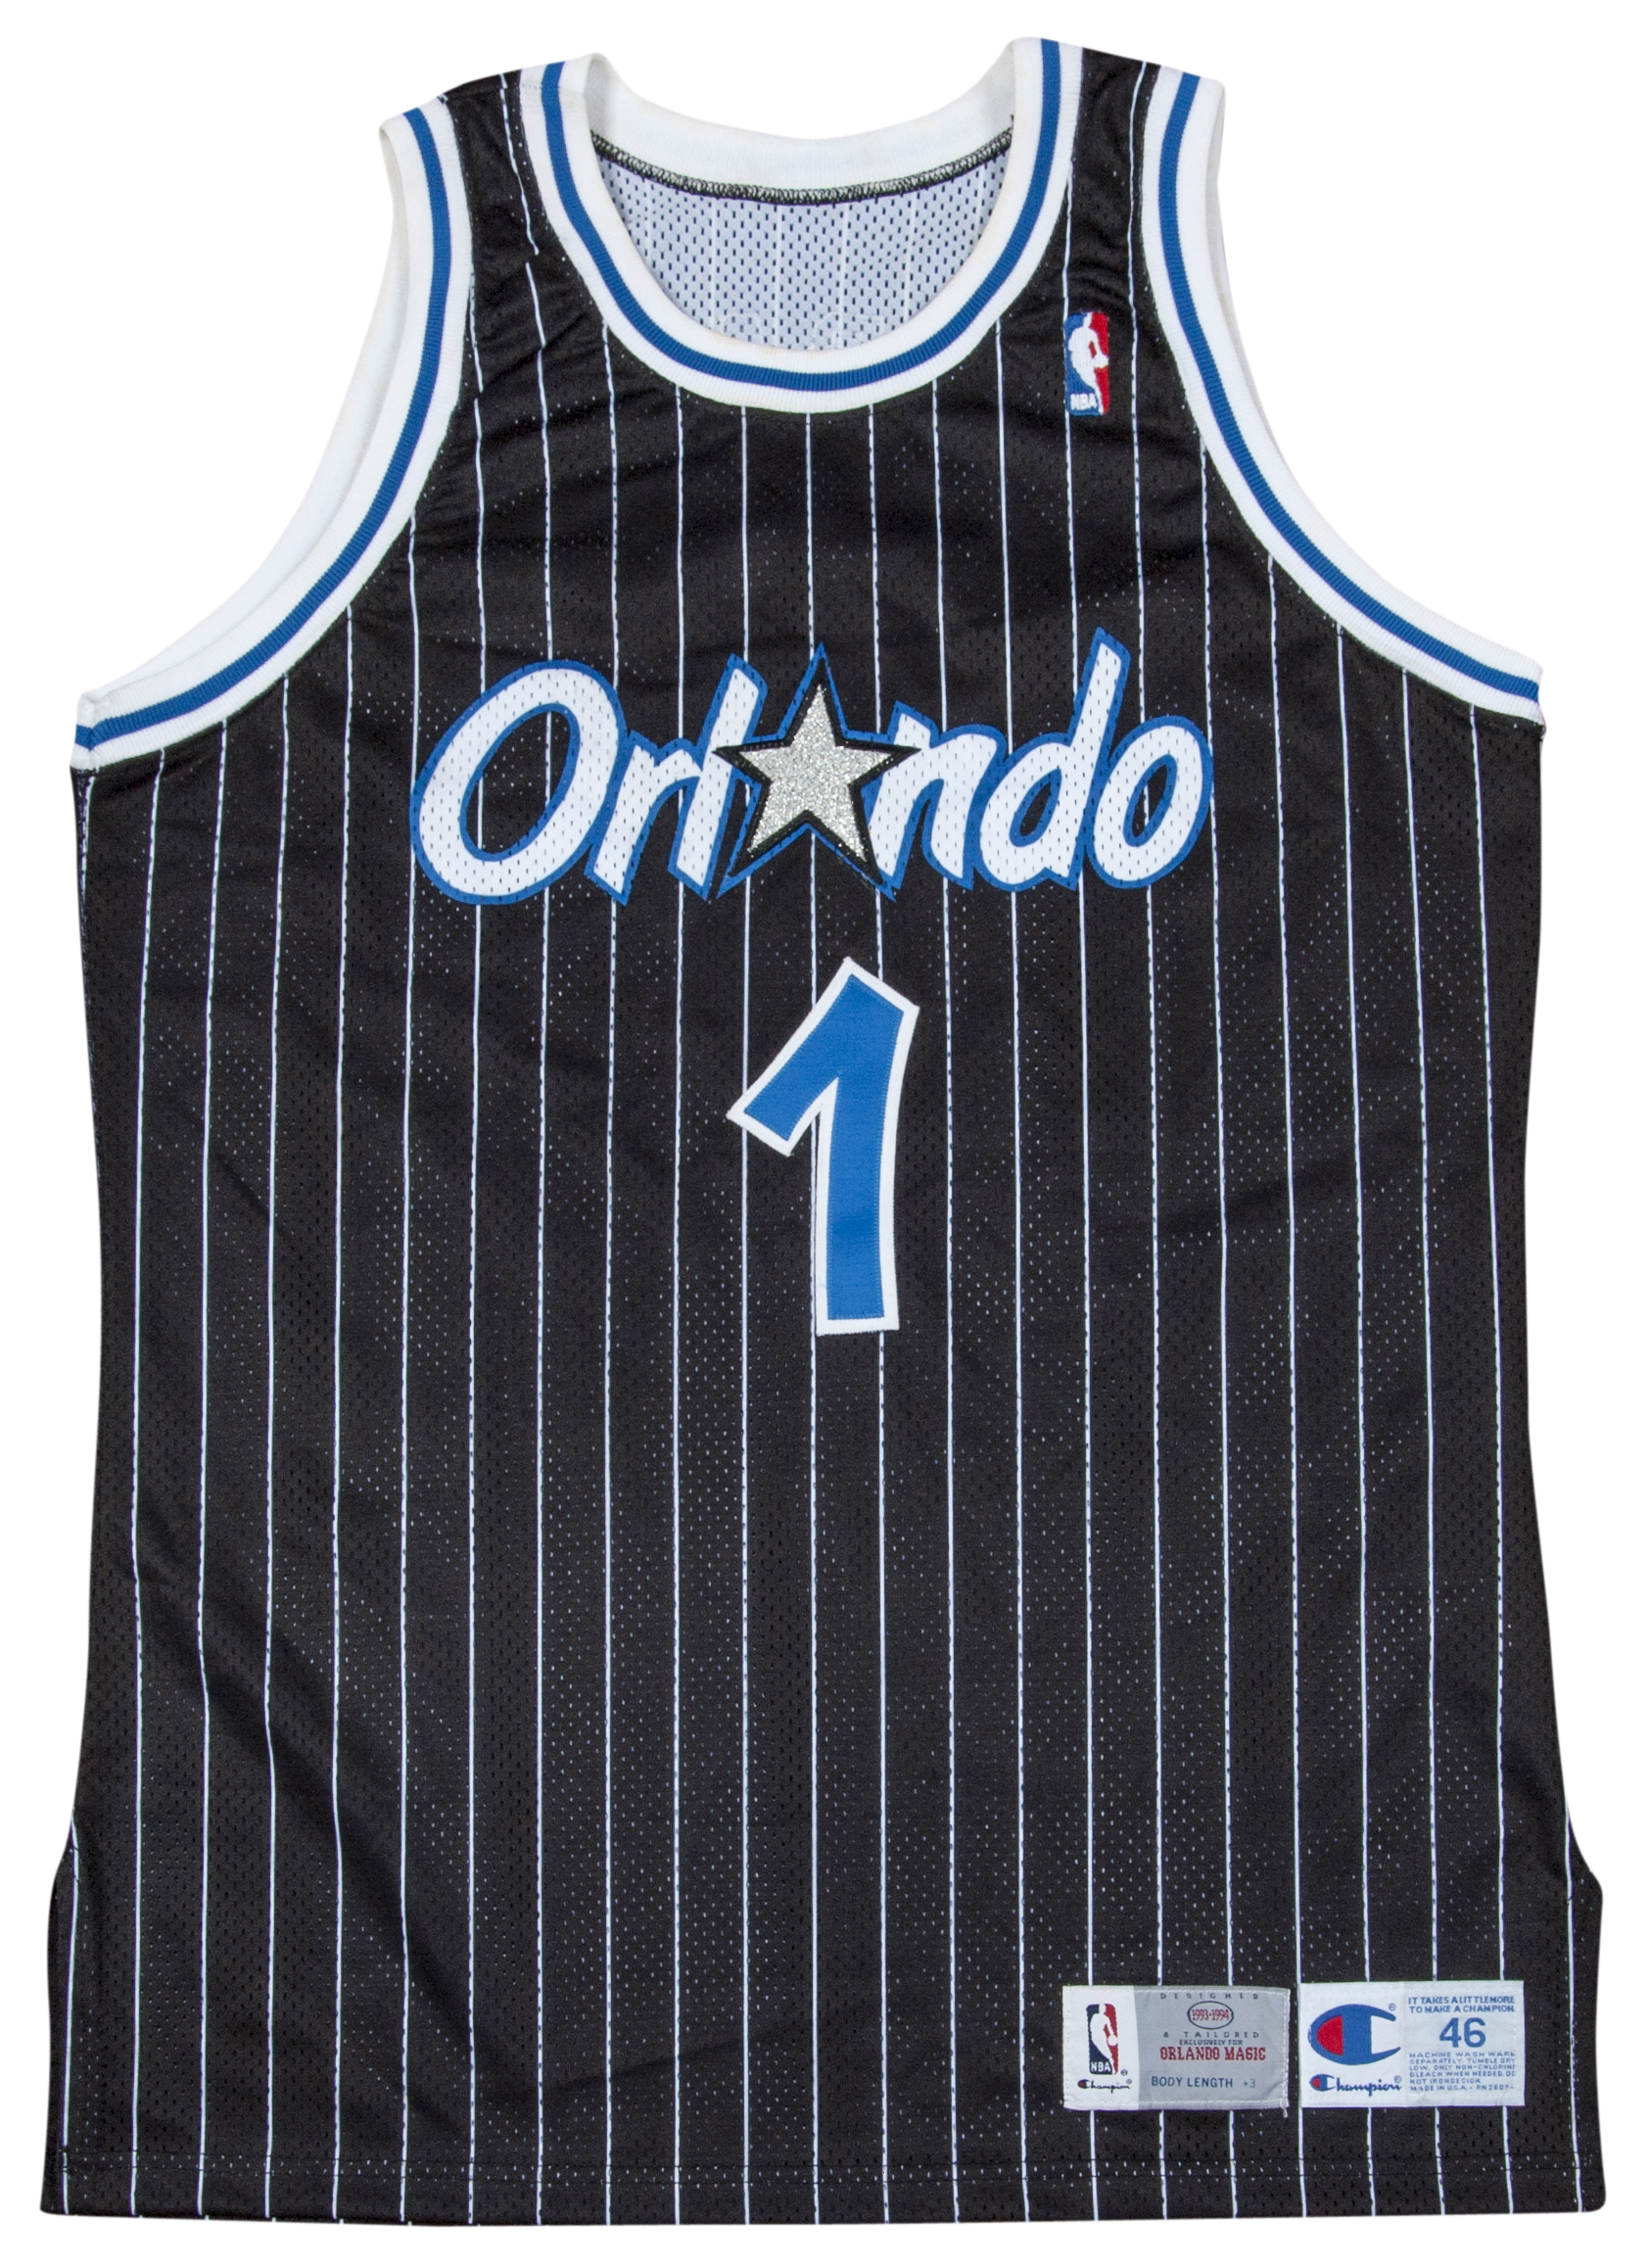 5c3c52050 1993-94 Anfernee Hardaway Game Used Orlando Magic Road Jersey. Hover to  zoom. Prev Next